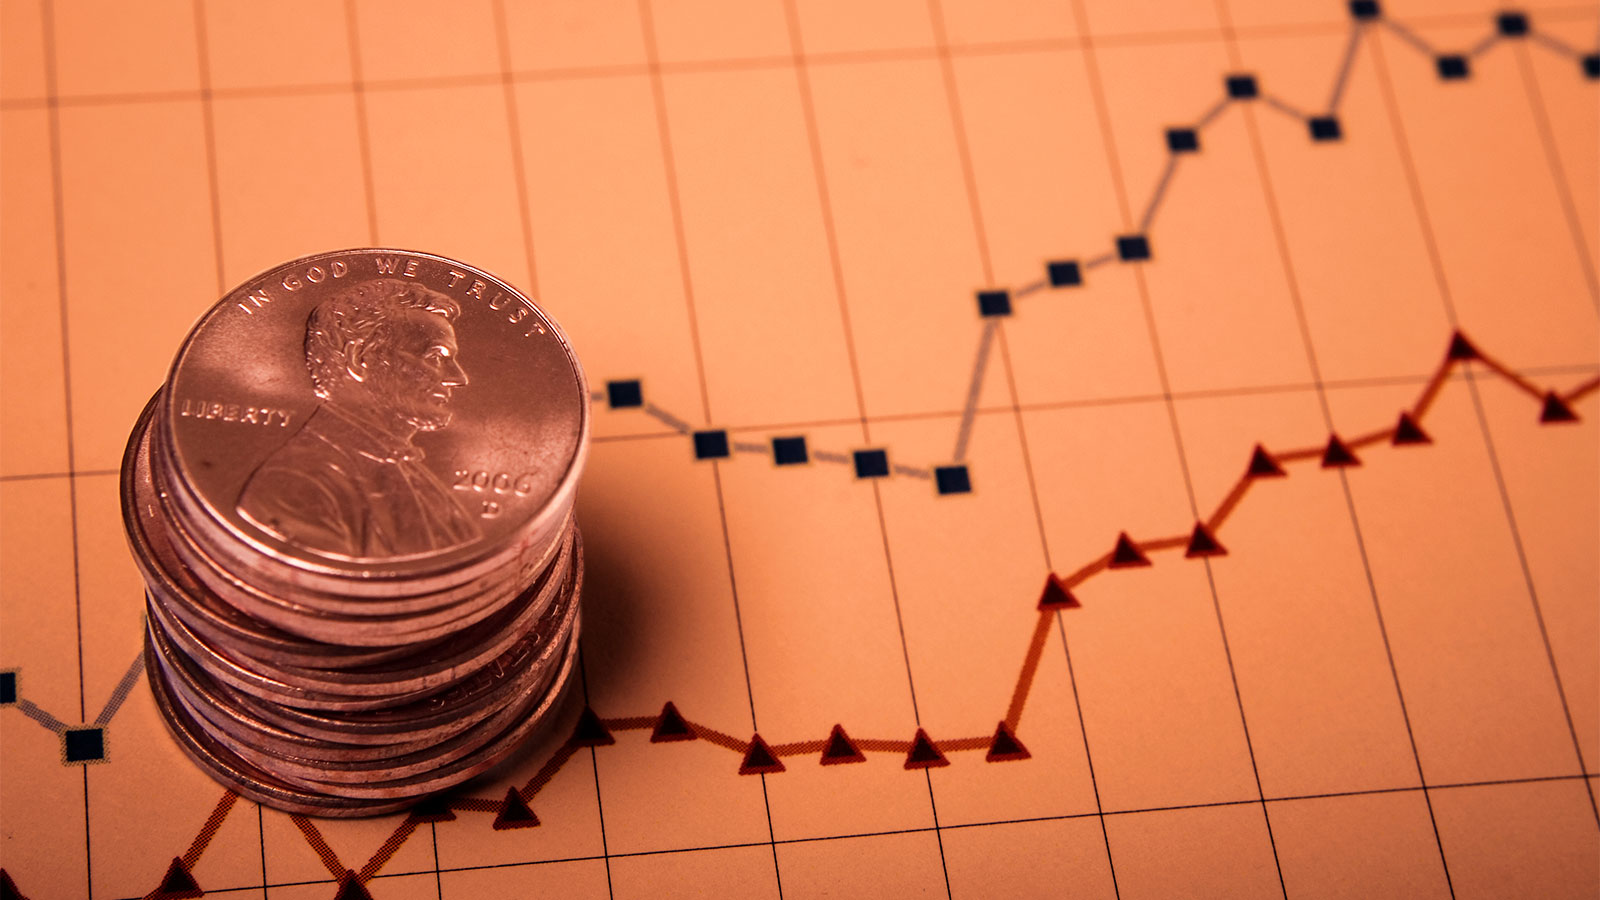 Can You Make Money Off Penny Stocks? | HowStuffWorks